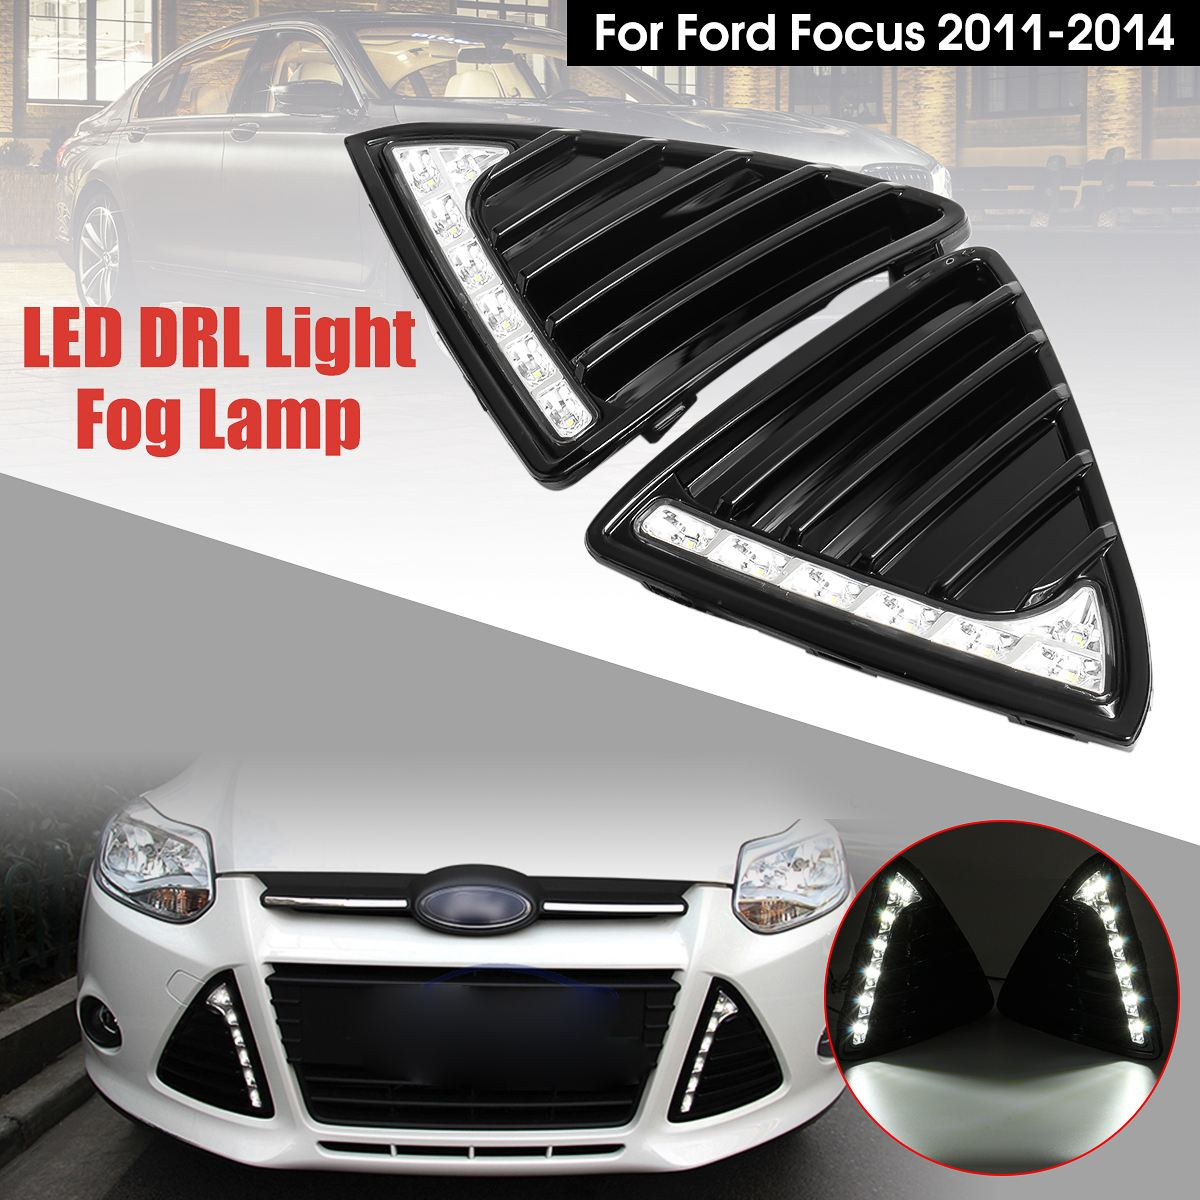 1 Pair White LED DRL Car Daytime Running Light Fog Lamp For Ford-Focus 2011-2014 New one stop shopping for k2 drl 2014 2015 new rio led drl k2 daytime running light fog lamp automotive accessories